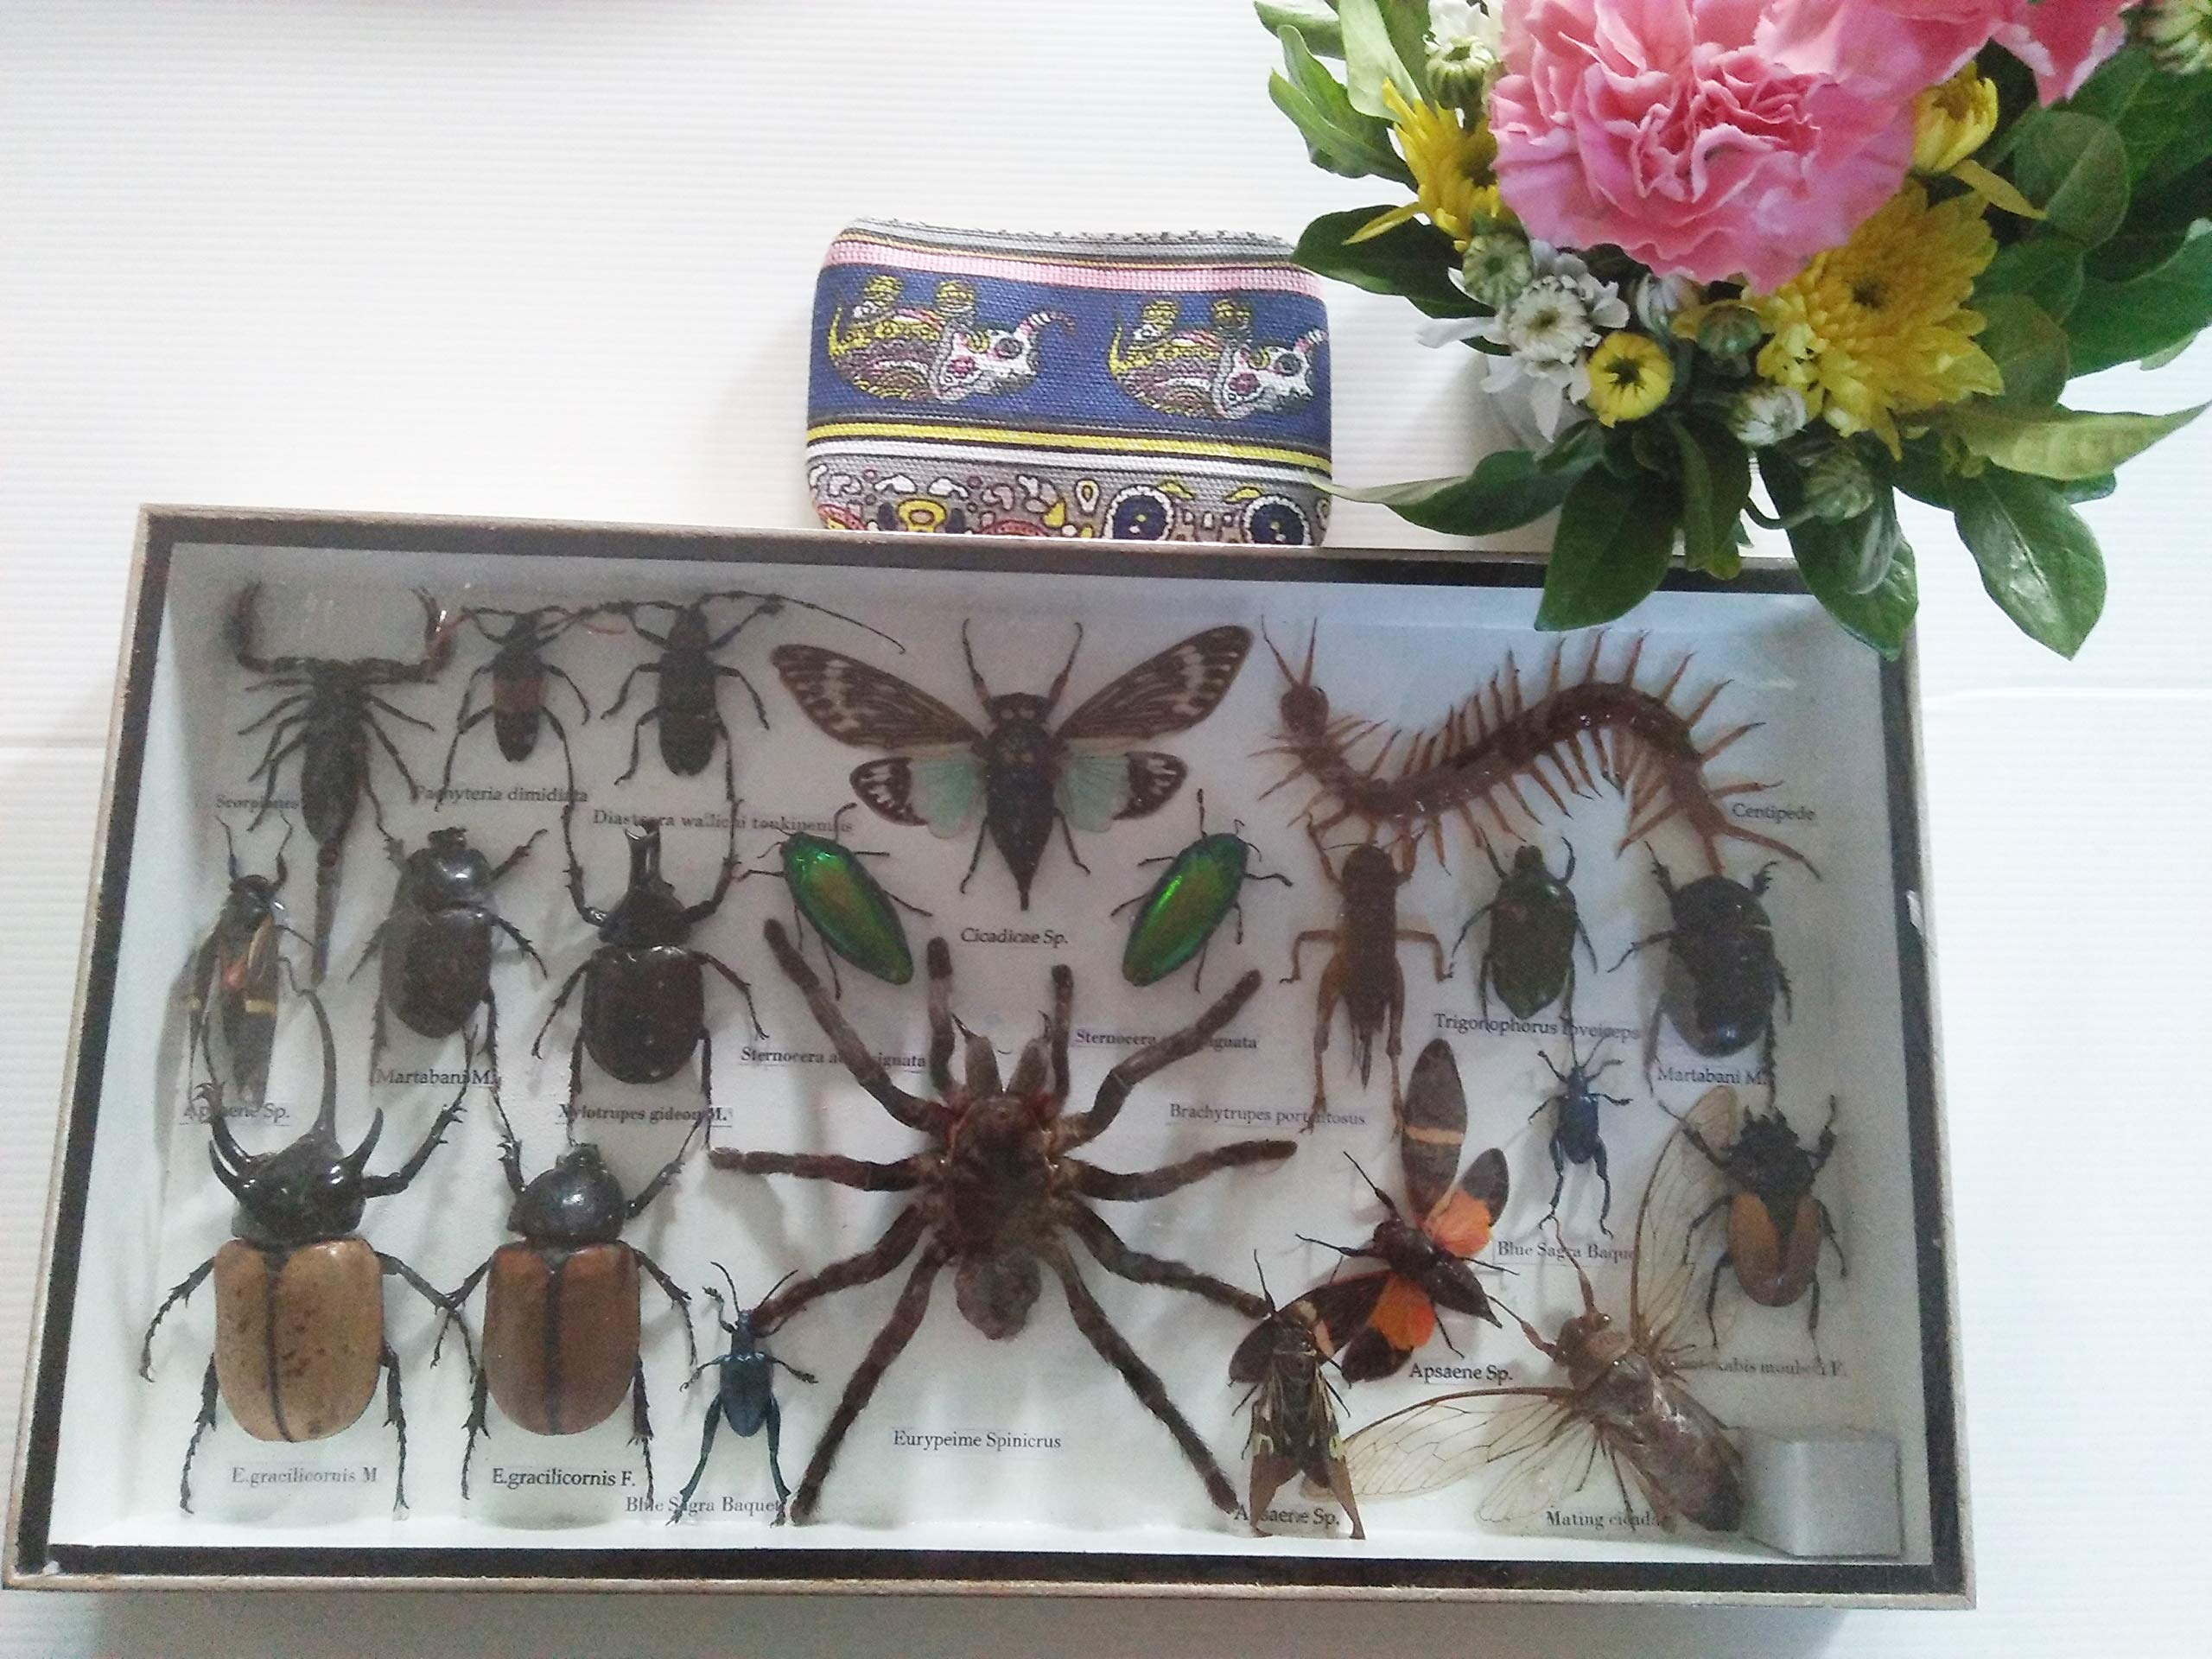 GIANT BLACK SPIDER BIRD EATING FRAMED TAXIDERMY INSECT BUG REAL ENTOMOLOGY GIFT